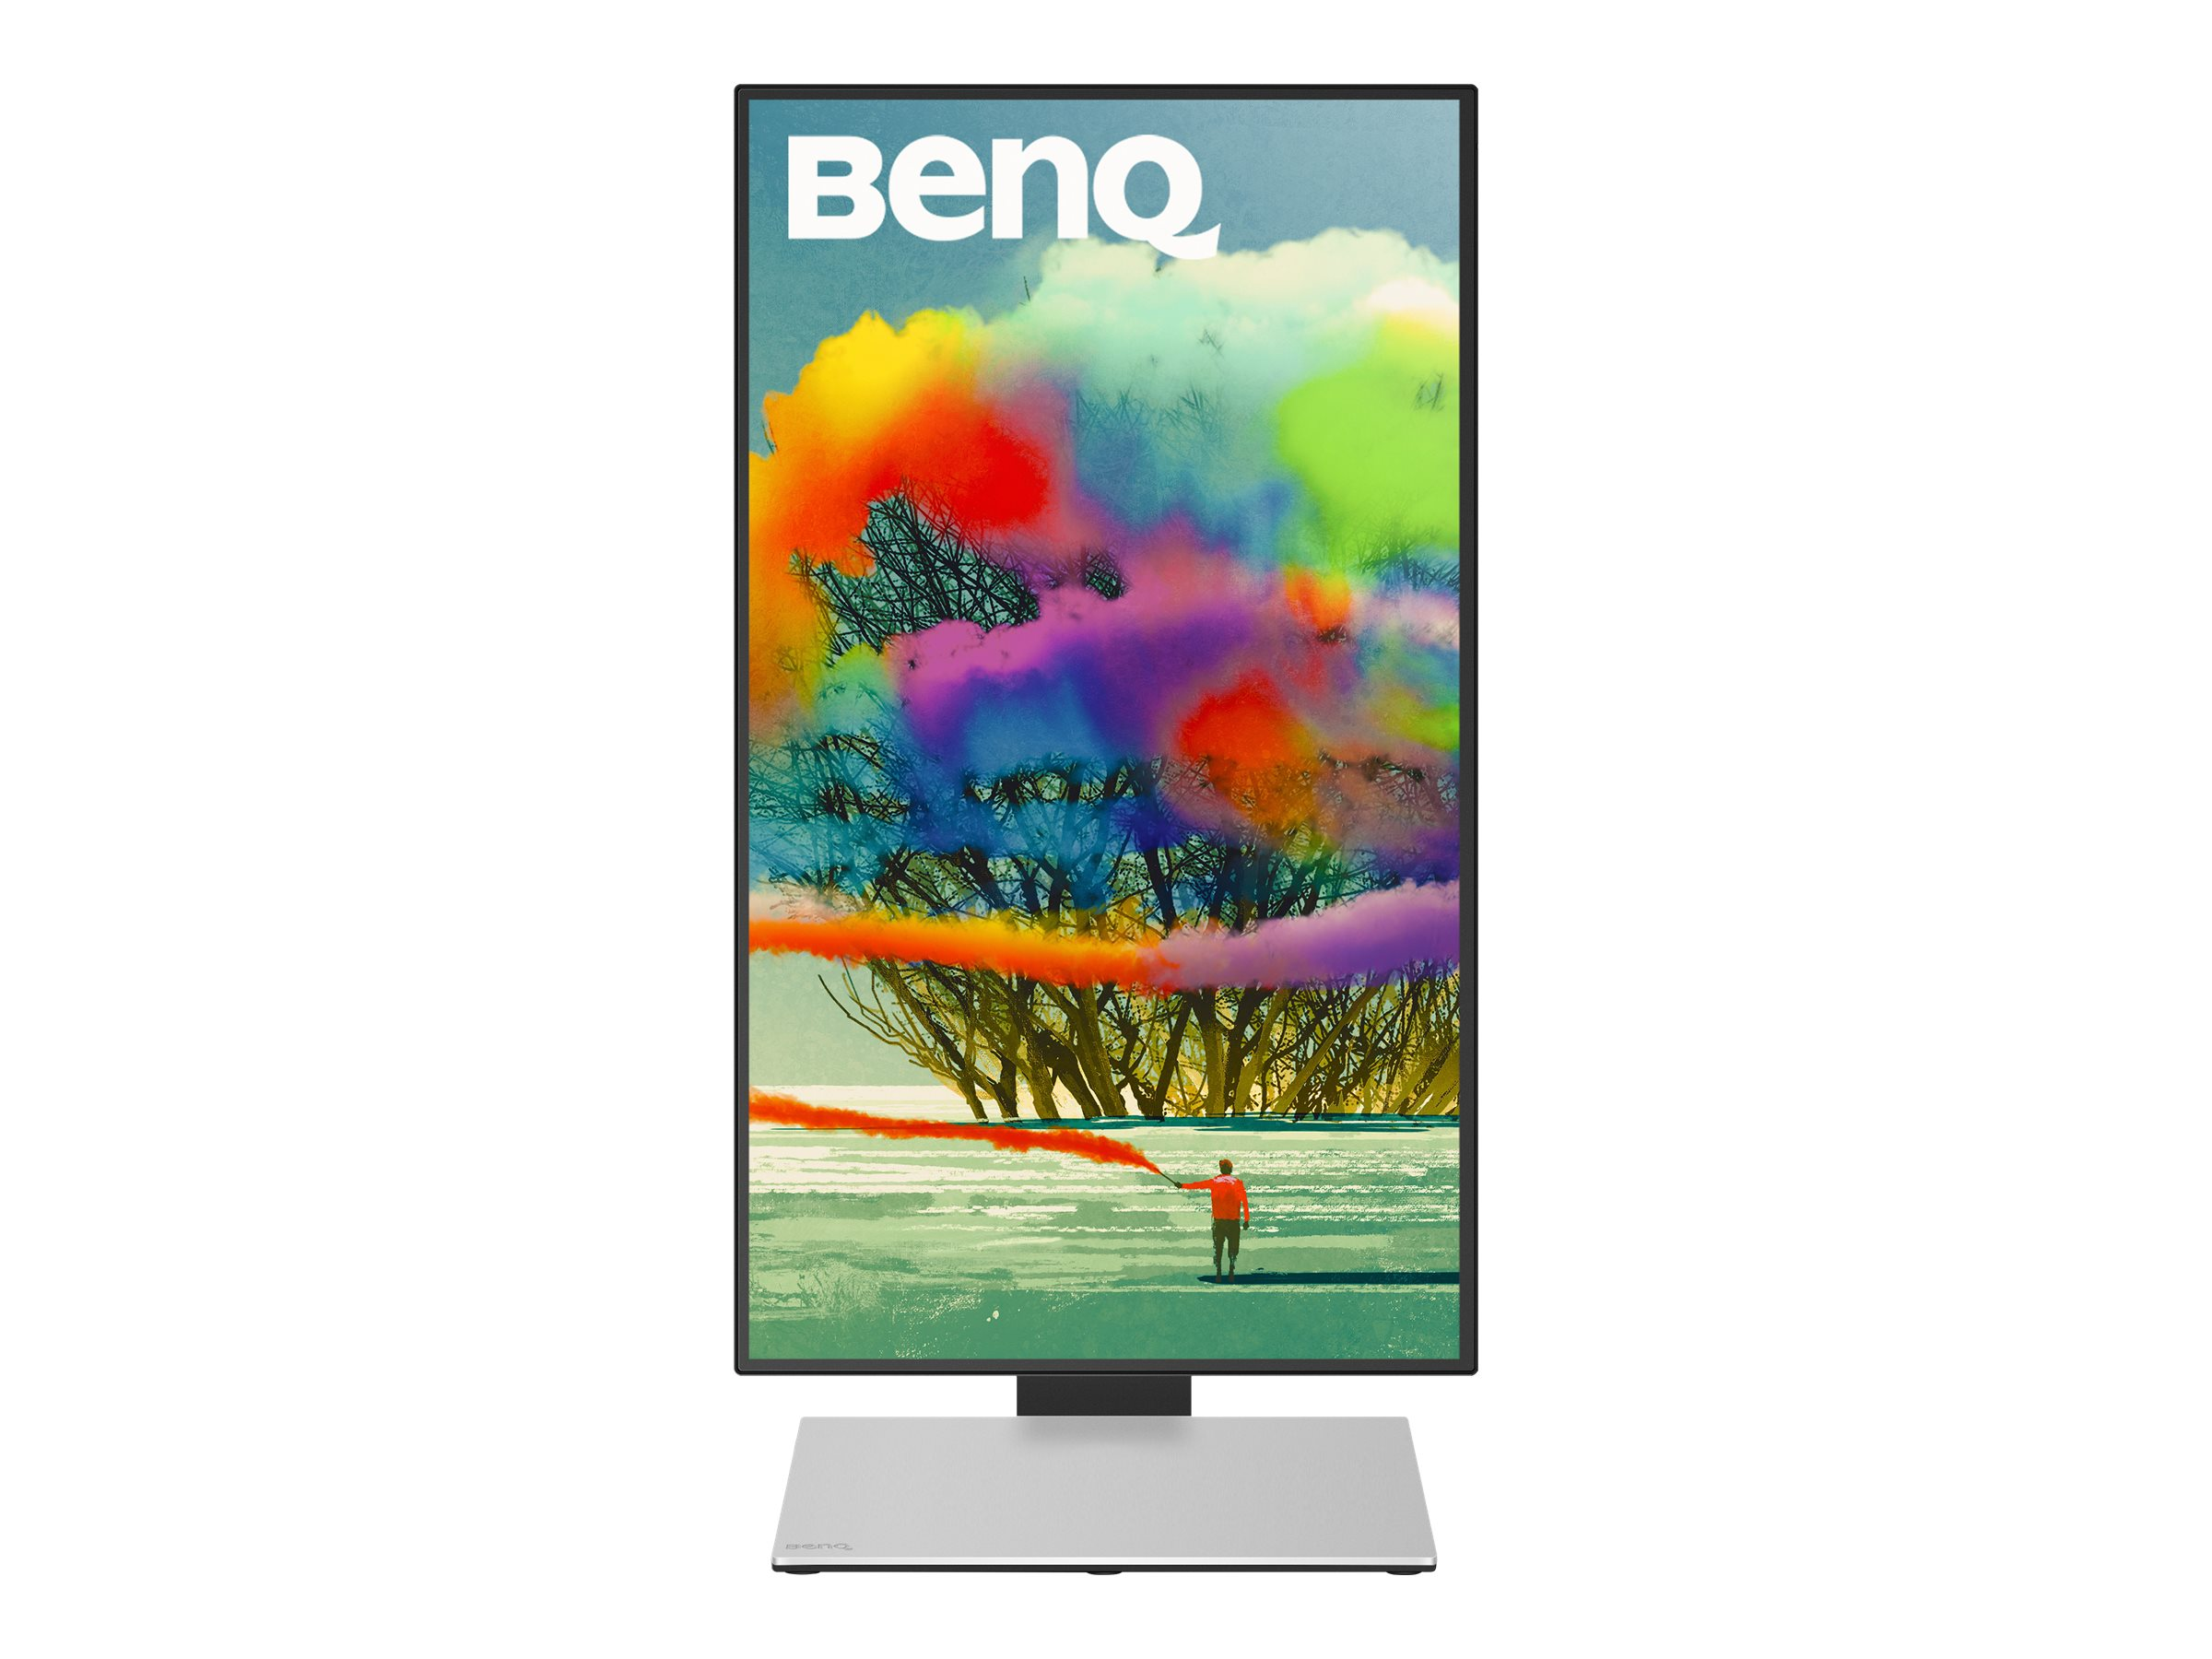 Benq 27 PD2710QC 2K QHD LED-LCD Monitor, Black, PD2710QC